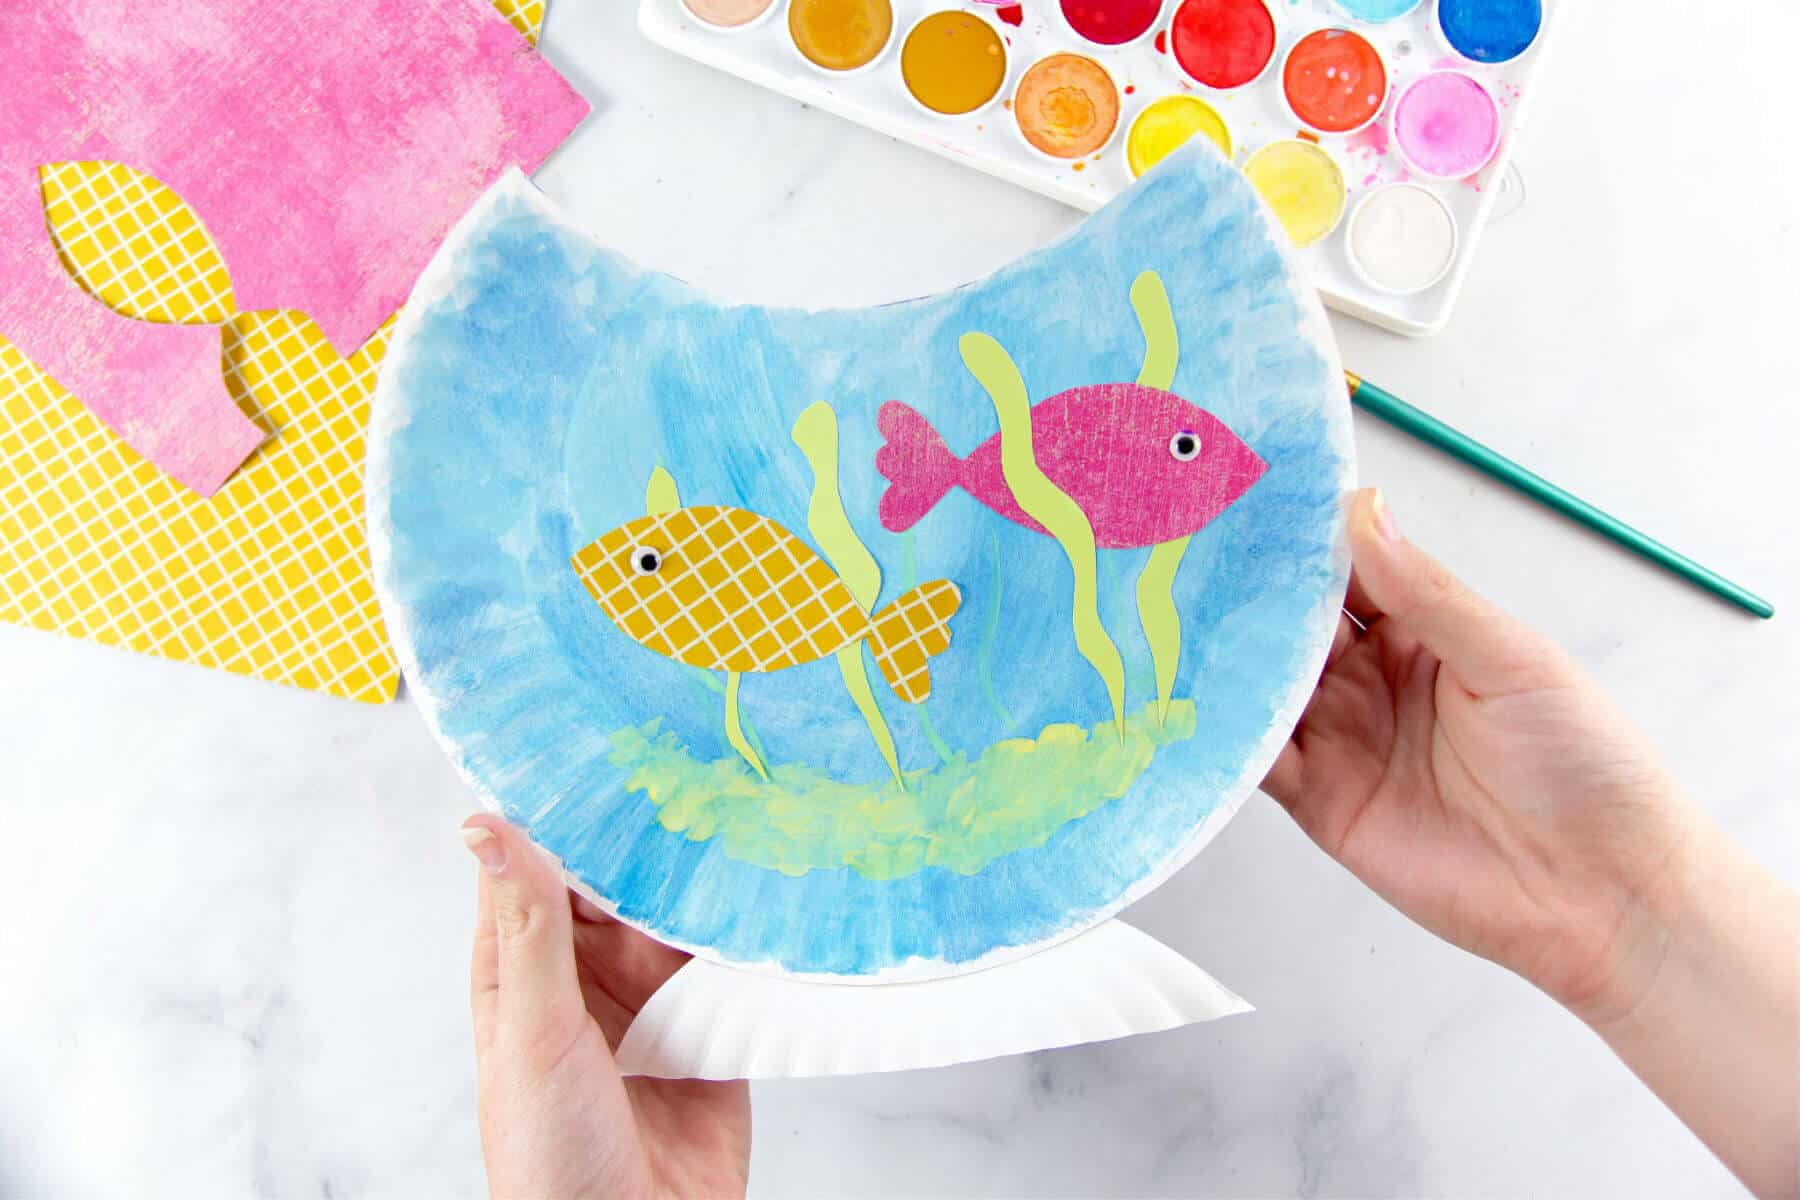 Hands holding a paper plate fish bowl craft